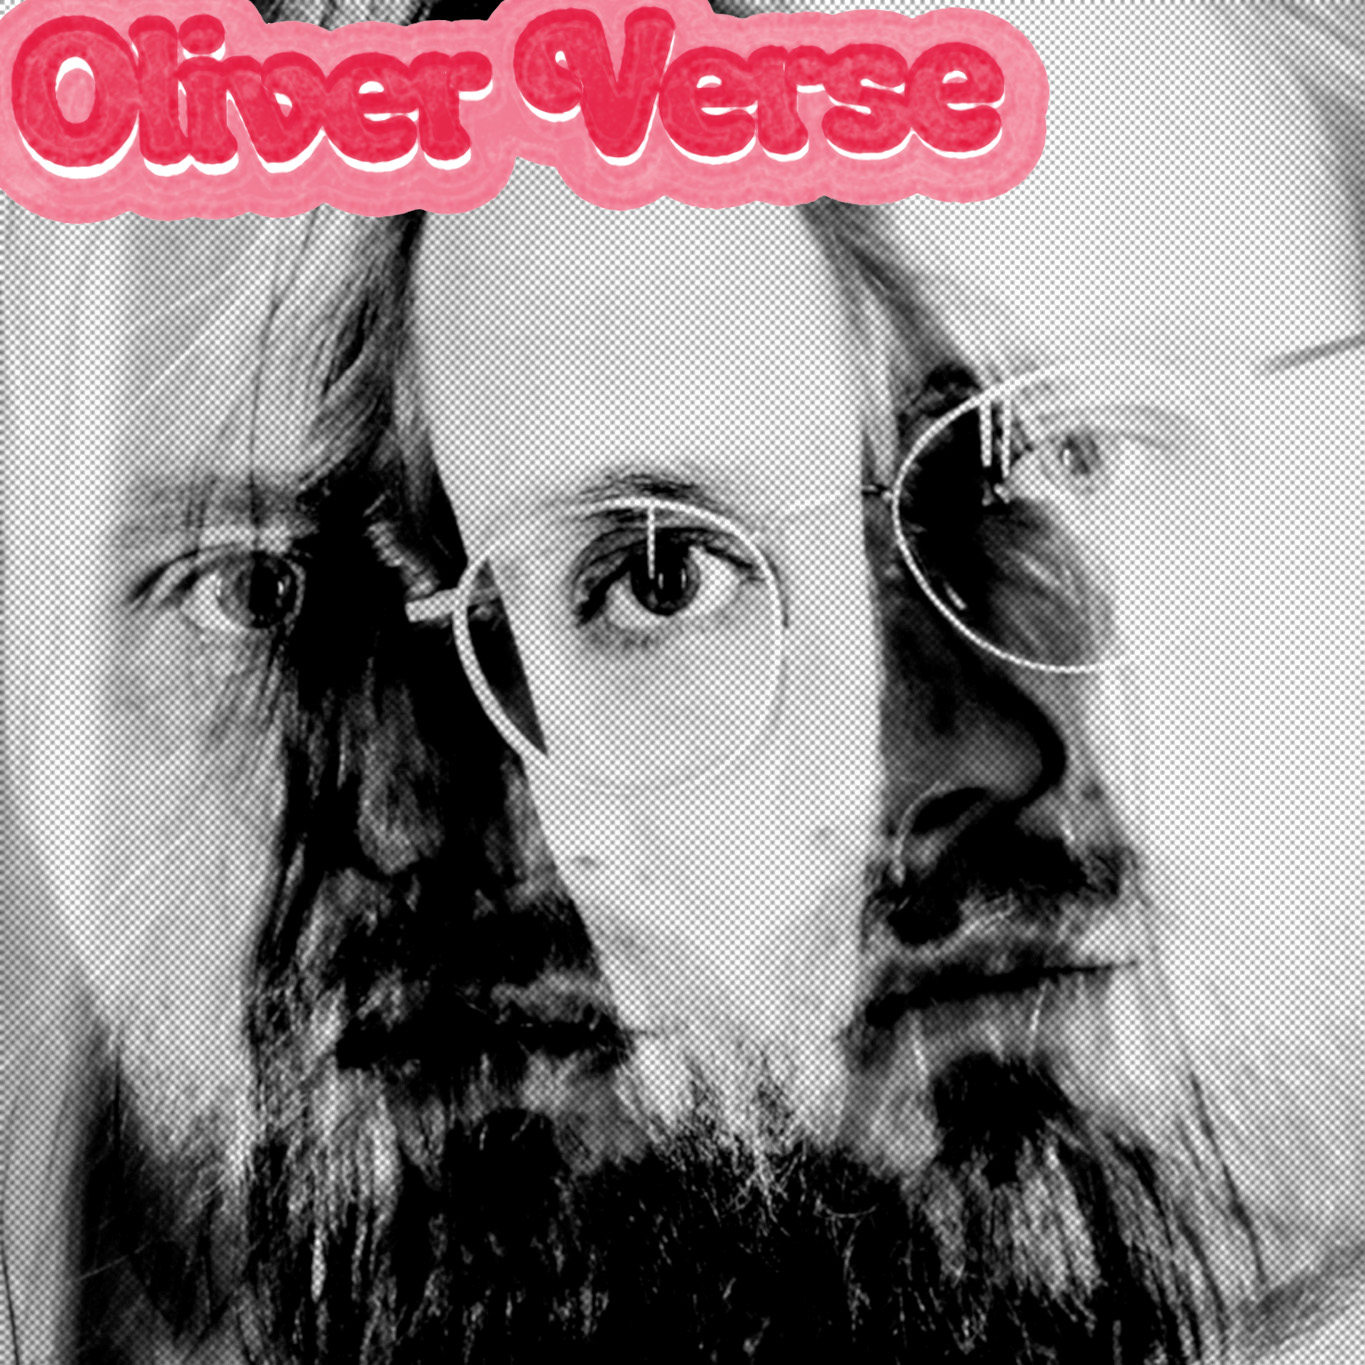 PSAS 2018   Oliver Verse   Lineup